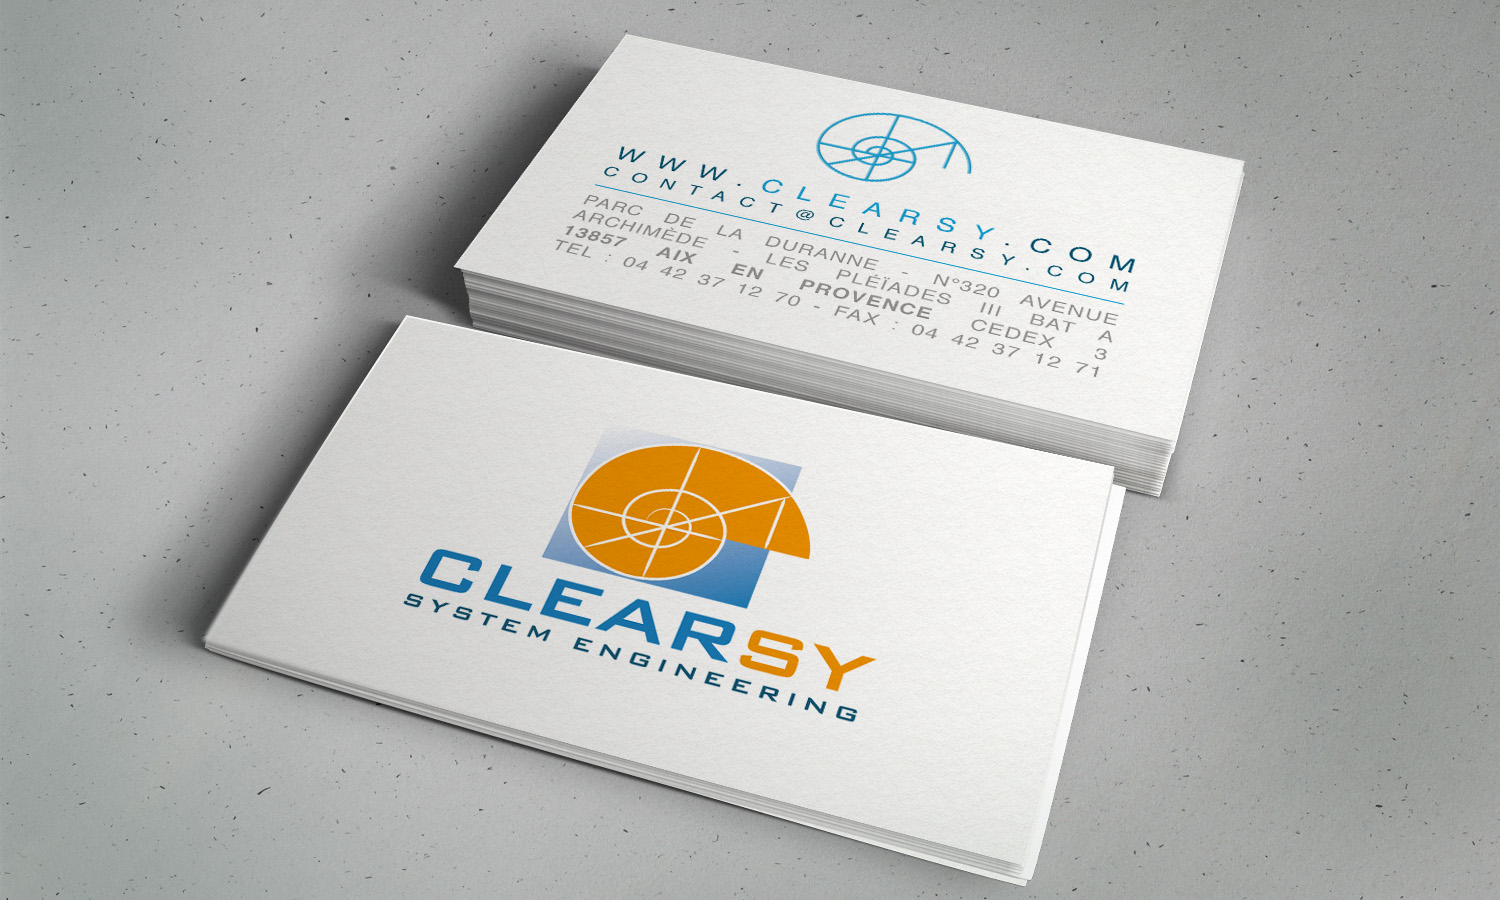 clearsy-carte1